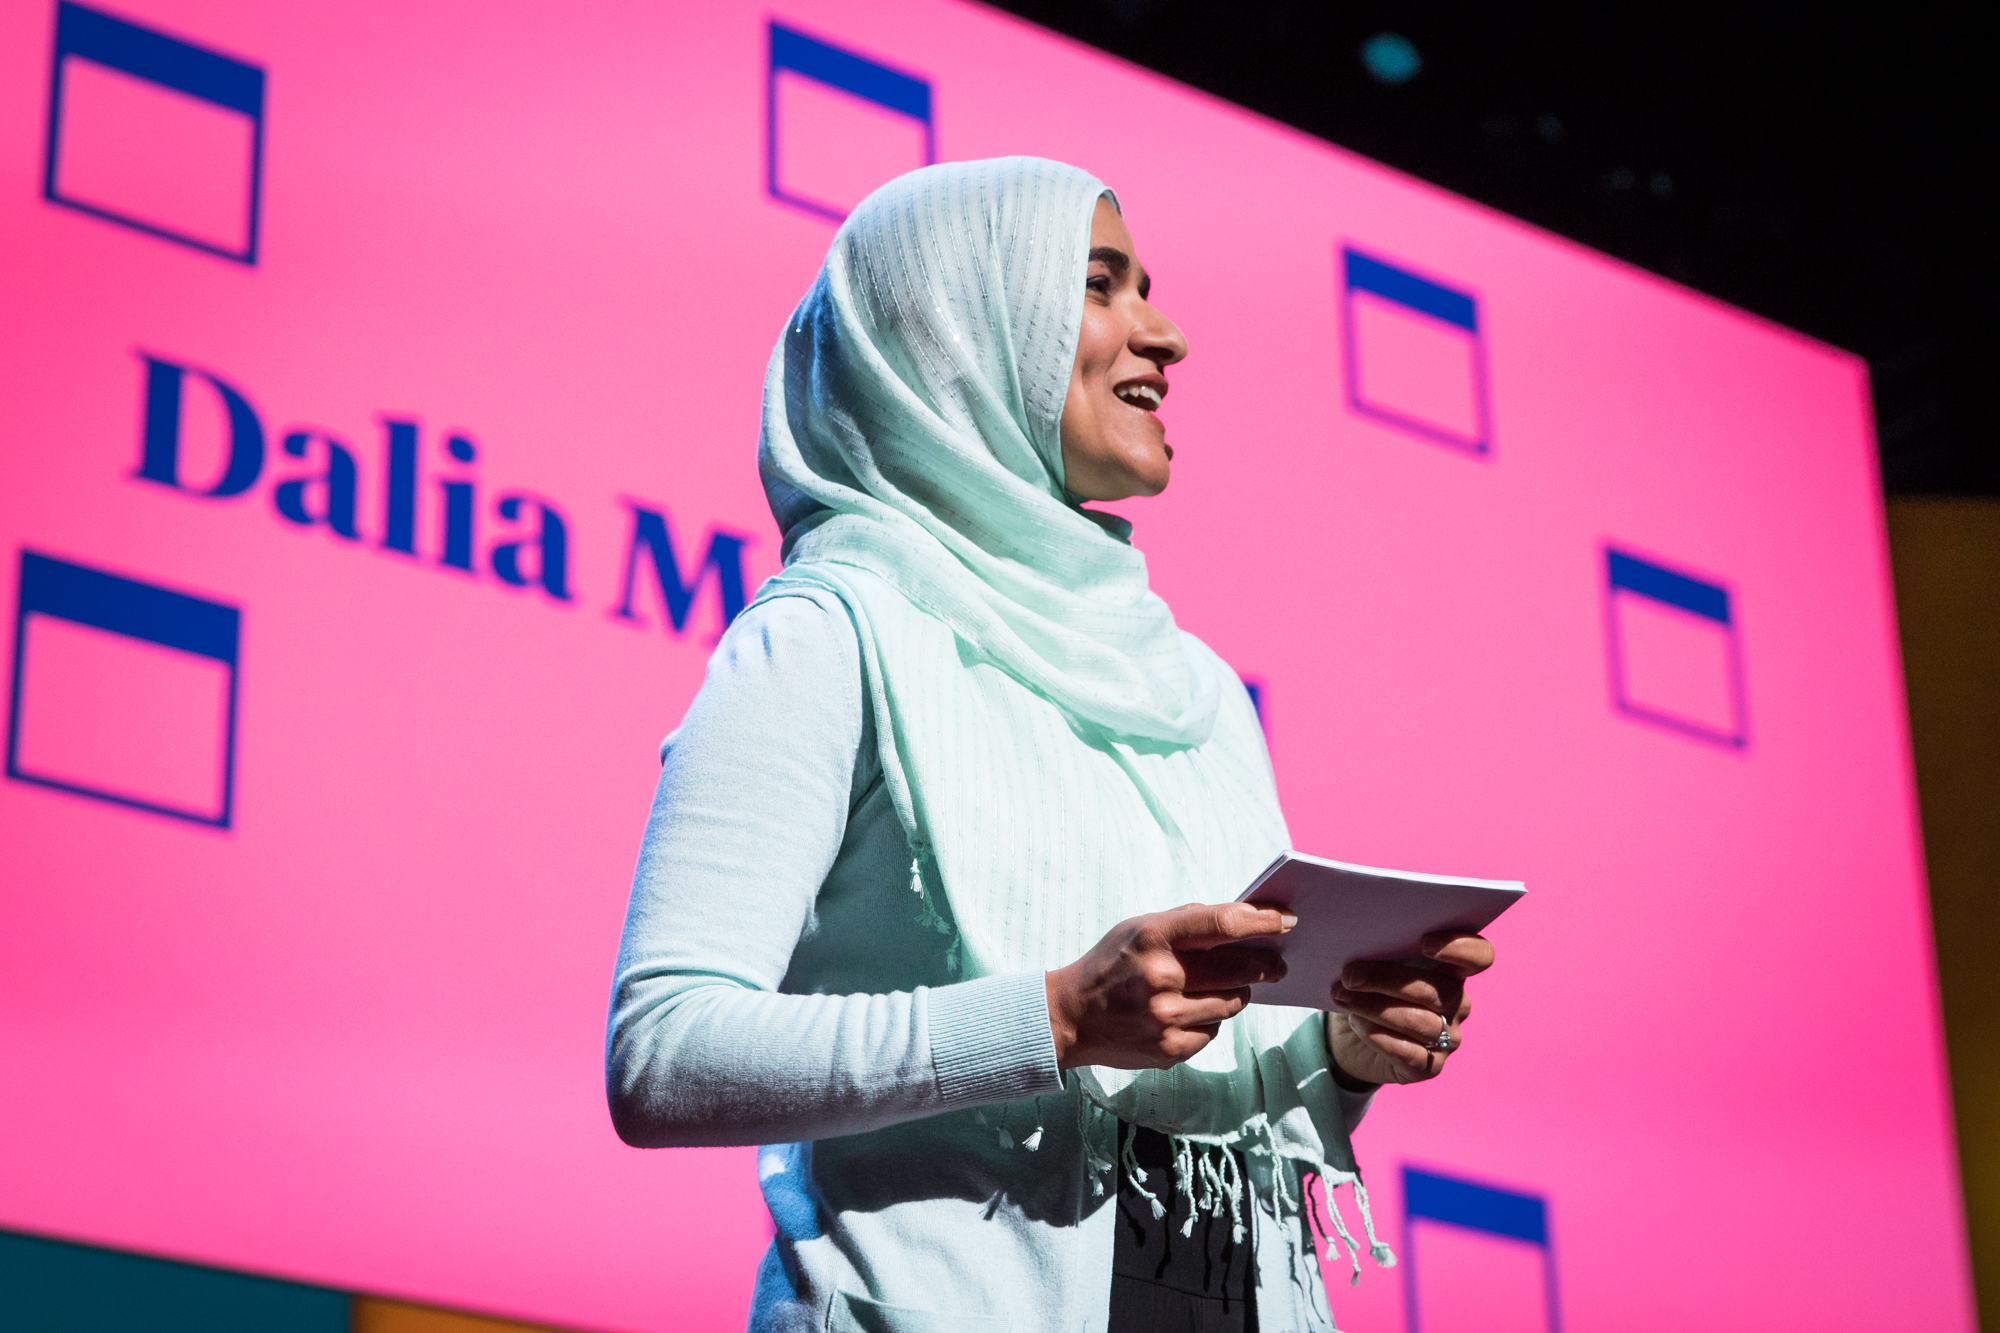 Host Dalia Mogahed at TEDWomen 2016 - It's About Time, October 26-28, 2016, Yerba Buena Centre for the Arts, San Francisco, California. Photo: Marla Aufmuth / TED